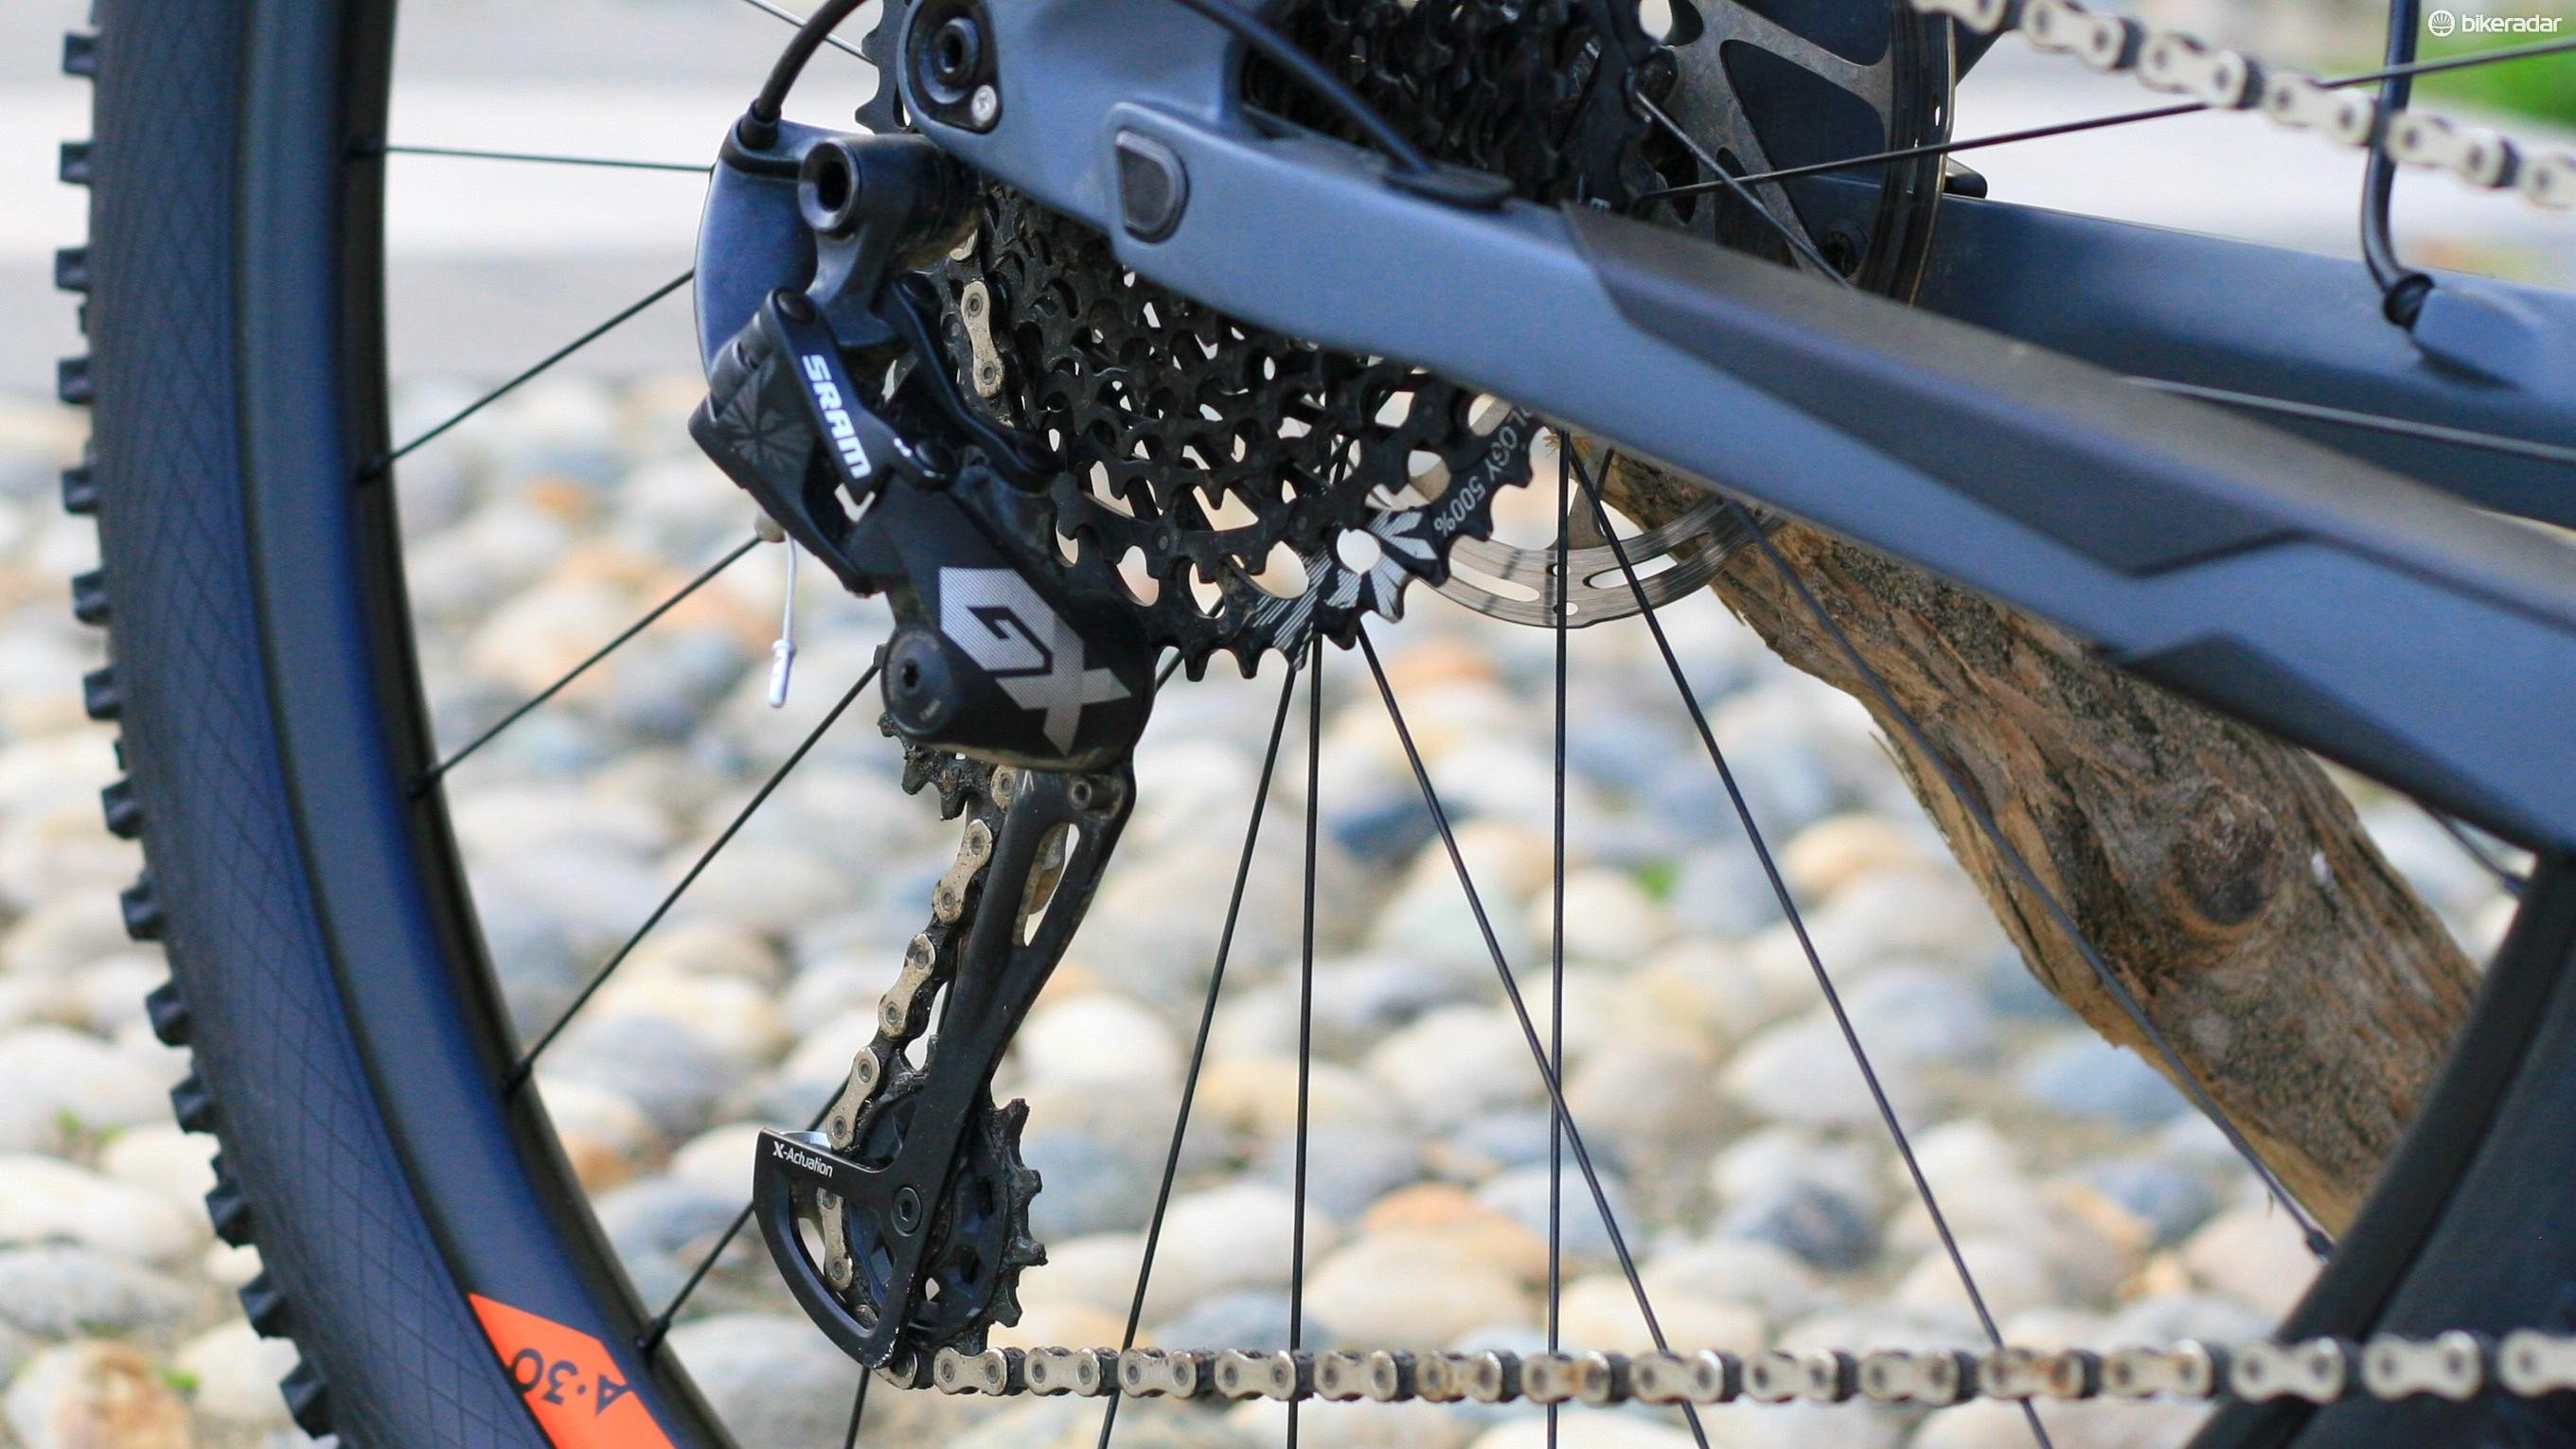 SRAM GX Eagle is proving a popular choice with product managers